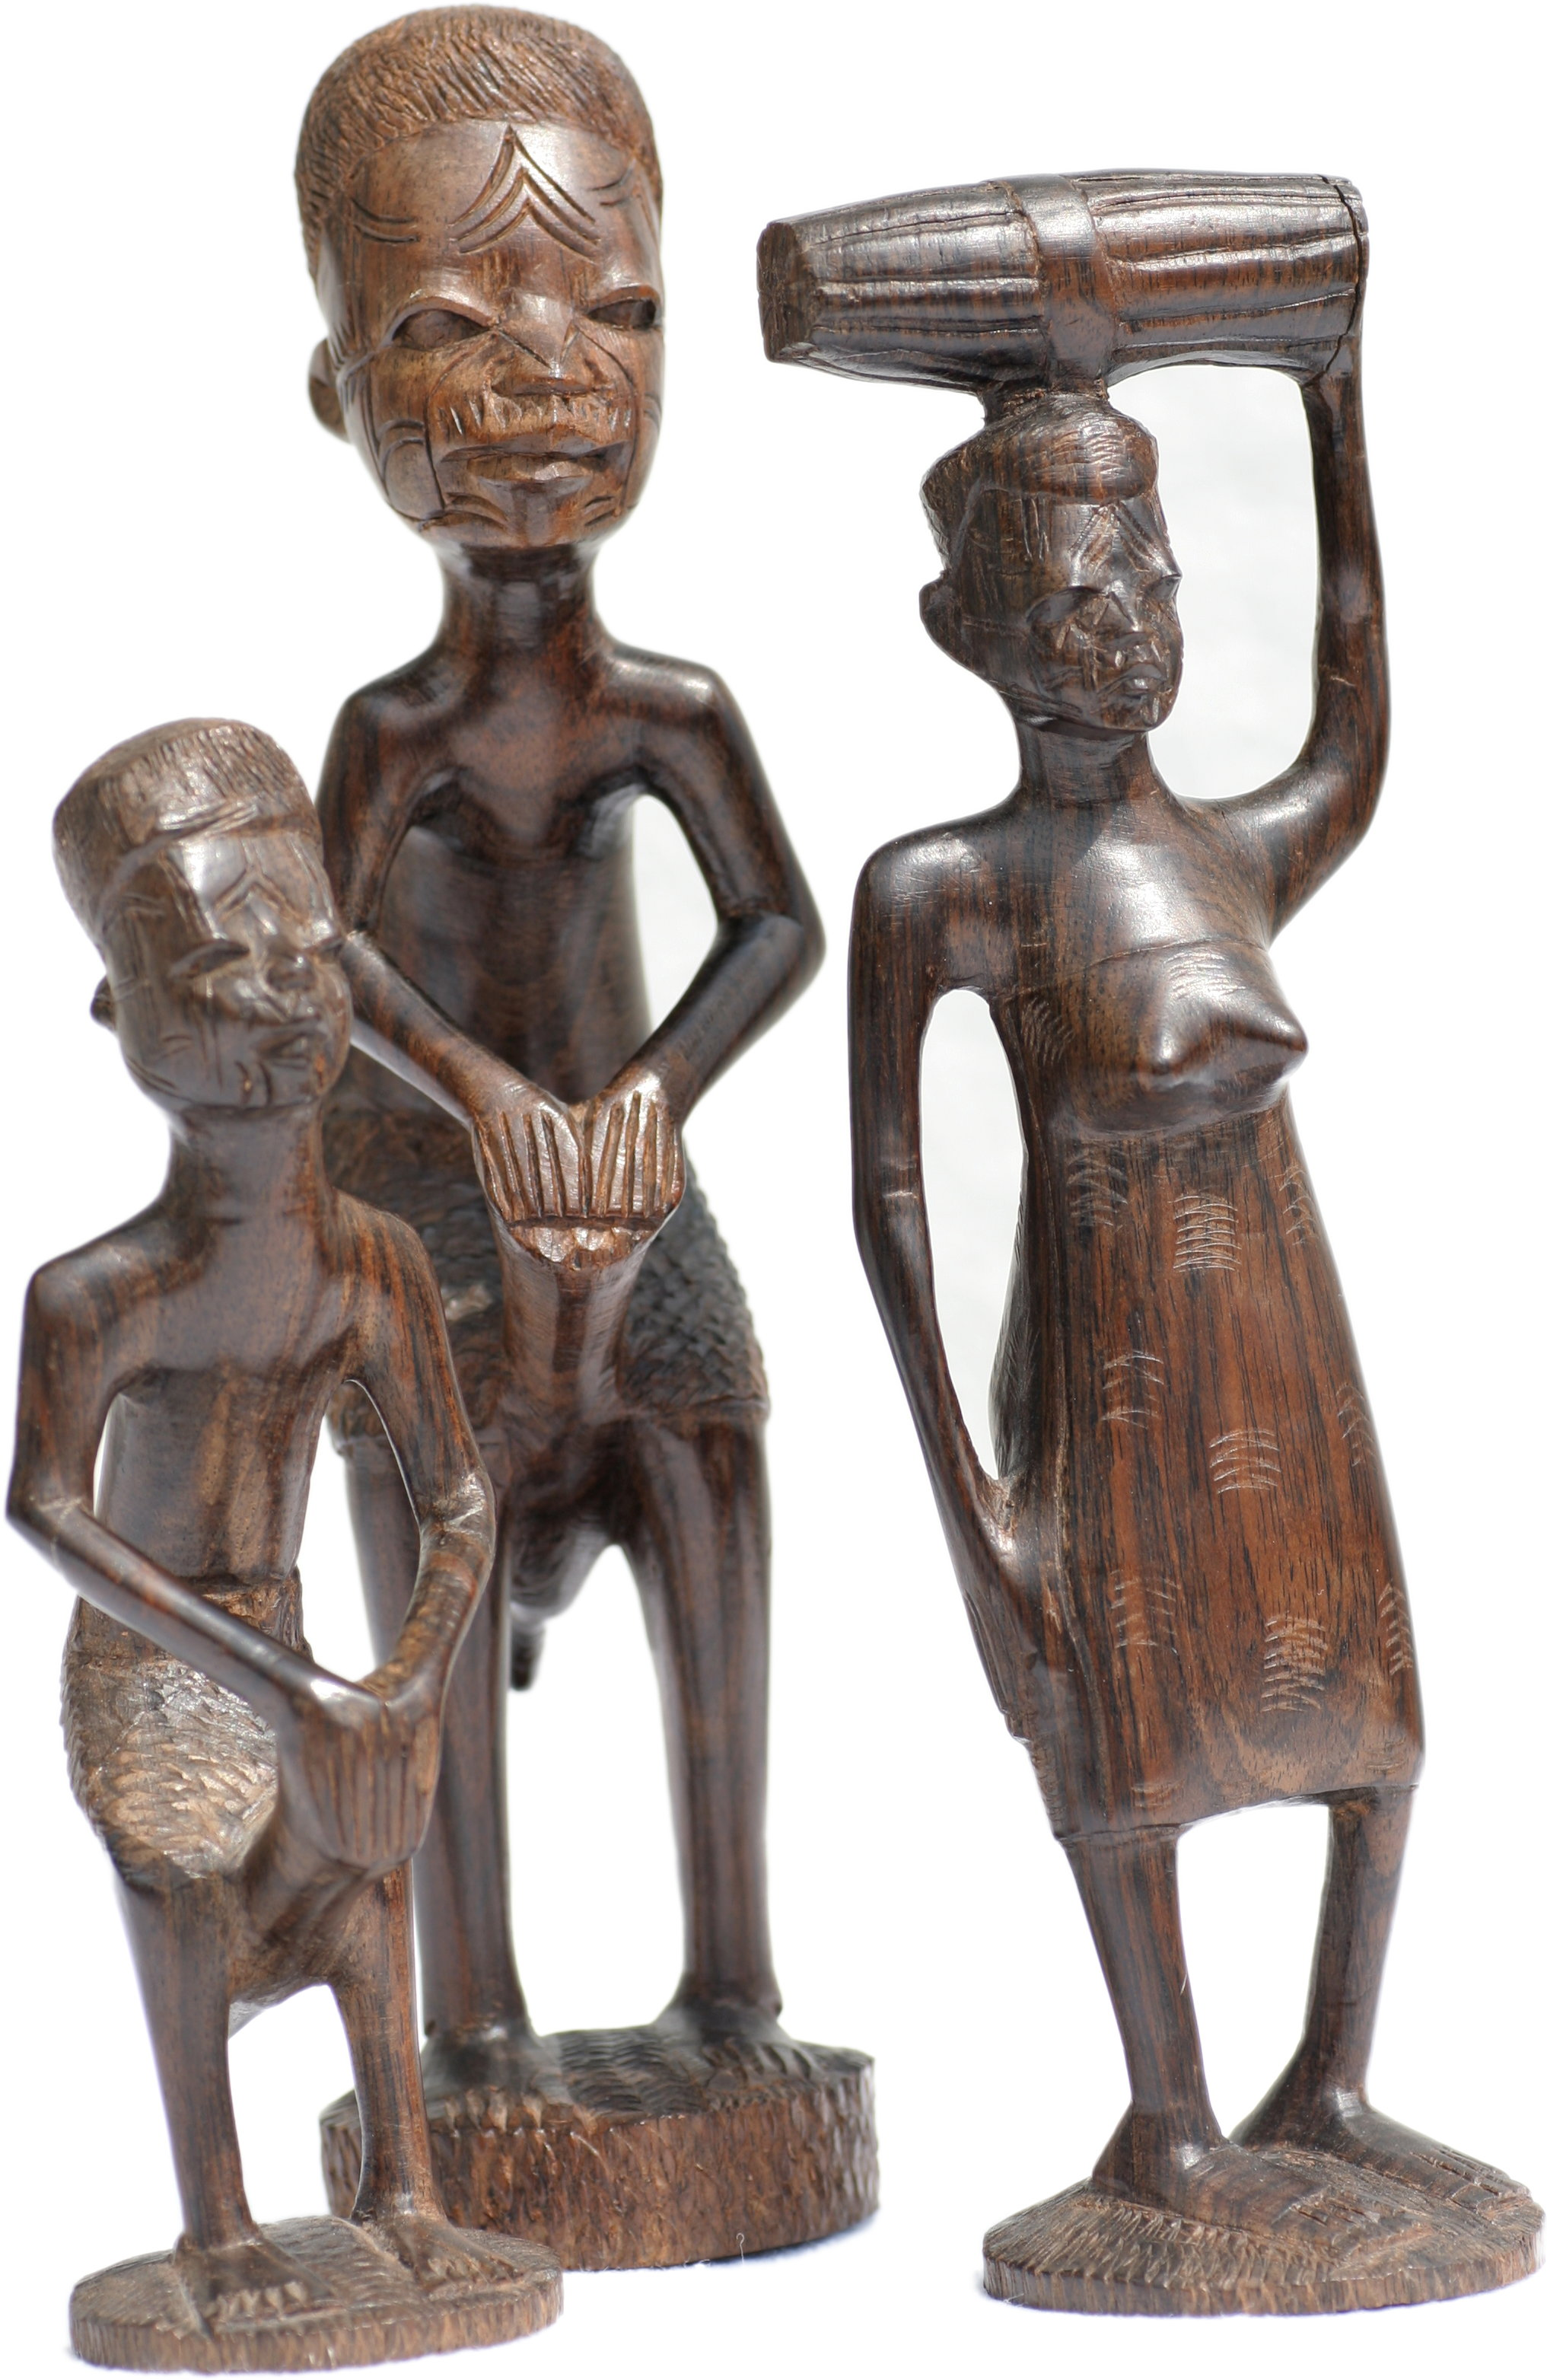 Wood carving by Makonde of Mozambique, Tanzania and Kenya